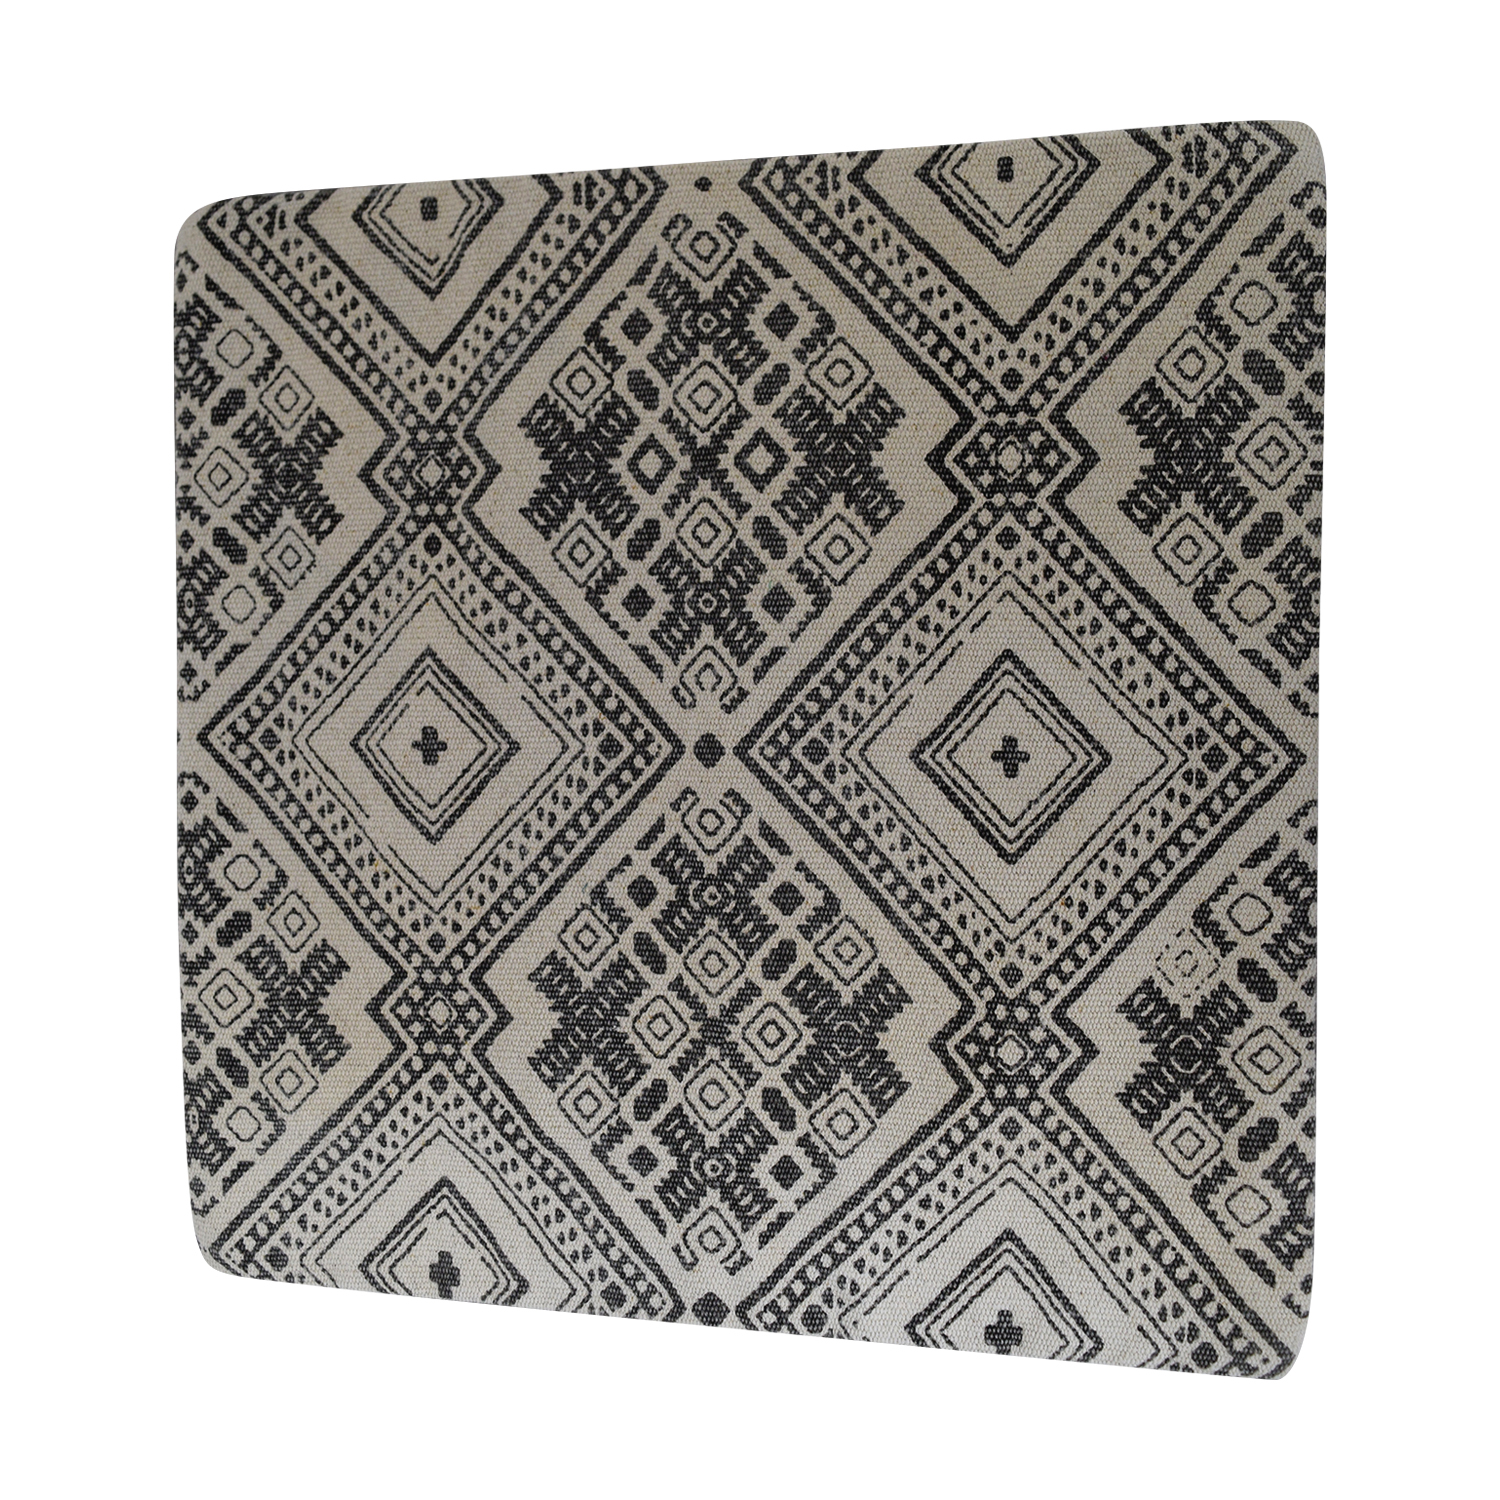 Obeetee Obeetee Azmat Grey Cushion Cover nyc